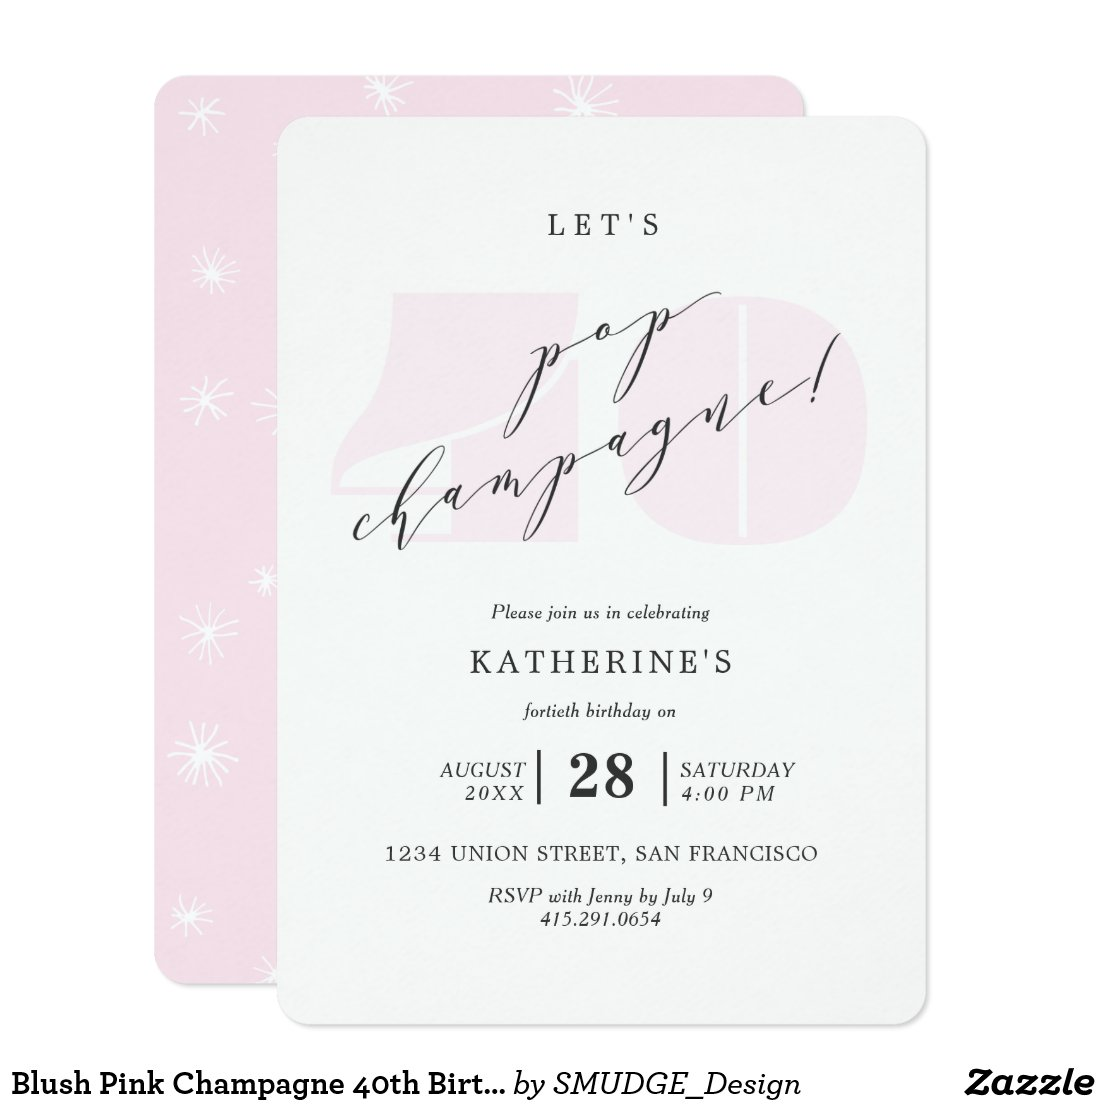 Blush Pink Champagne 40th Birthday Party Invite